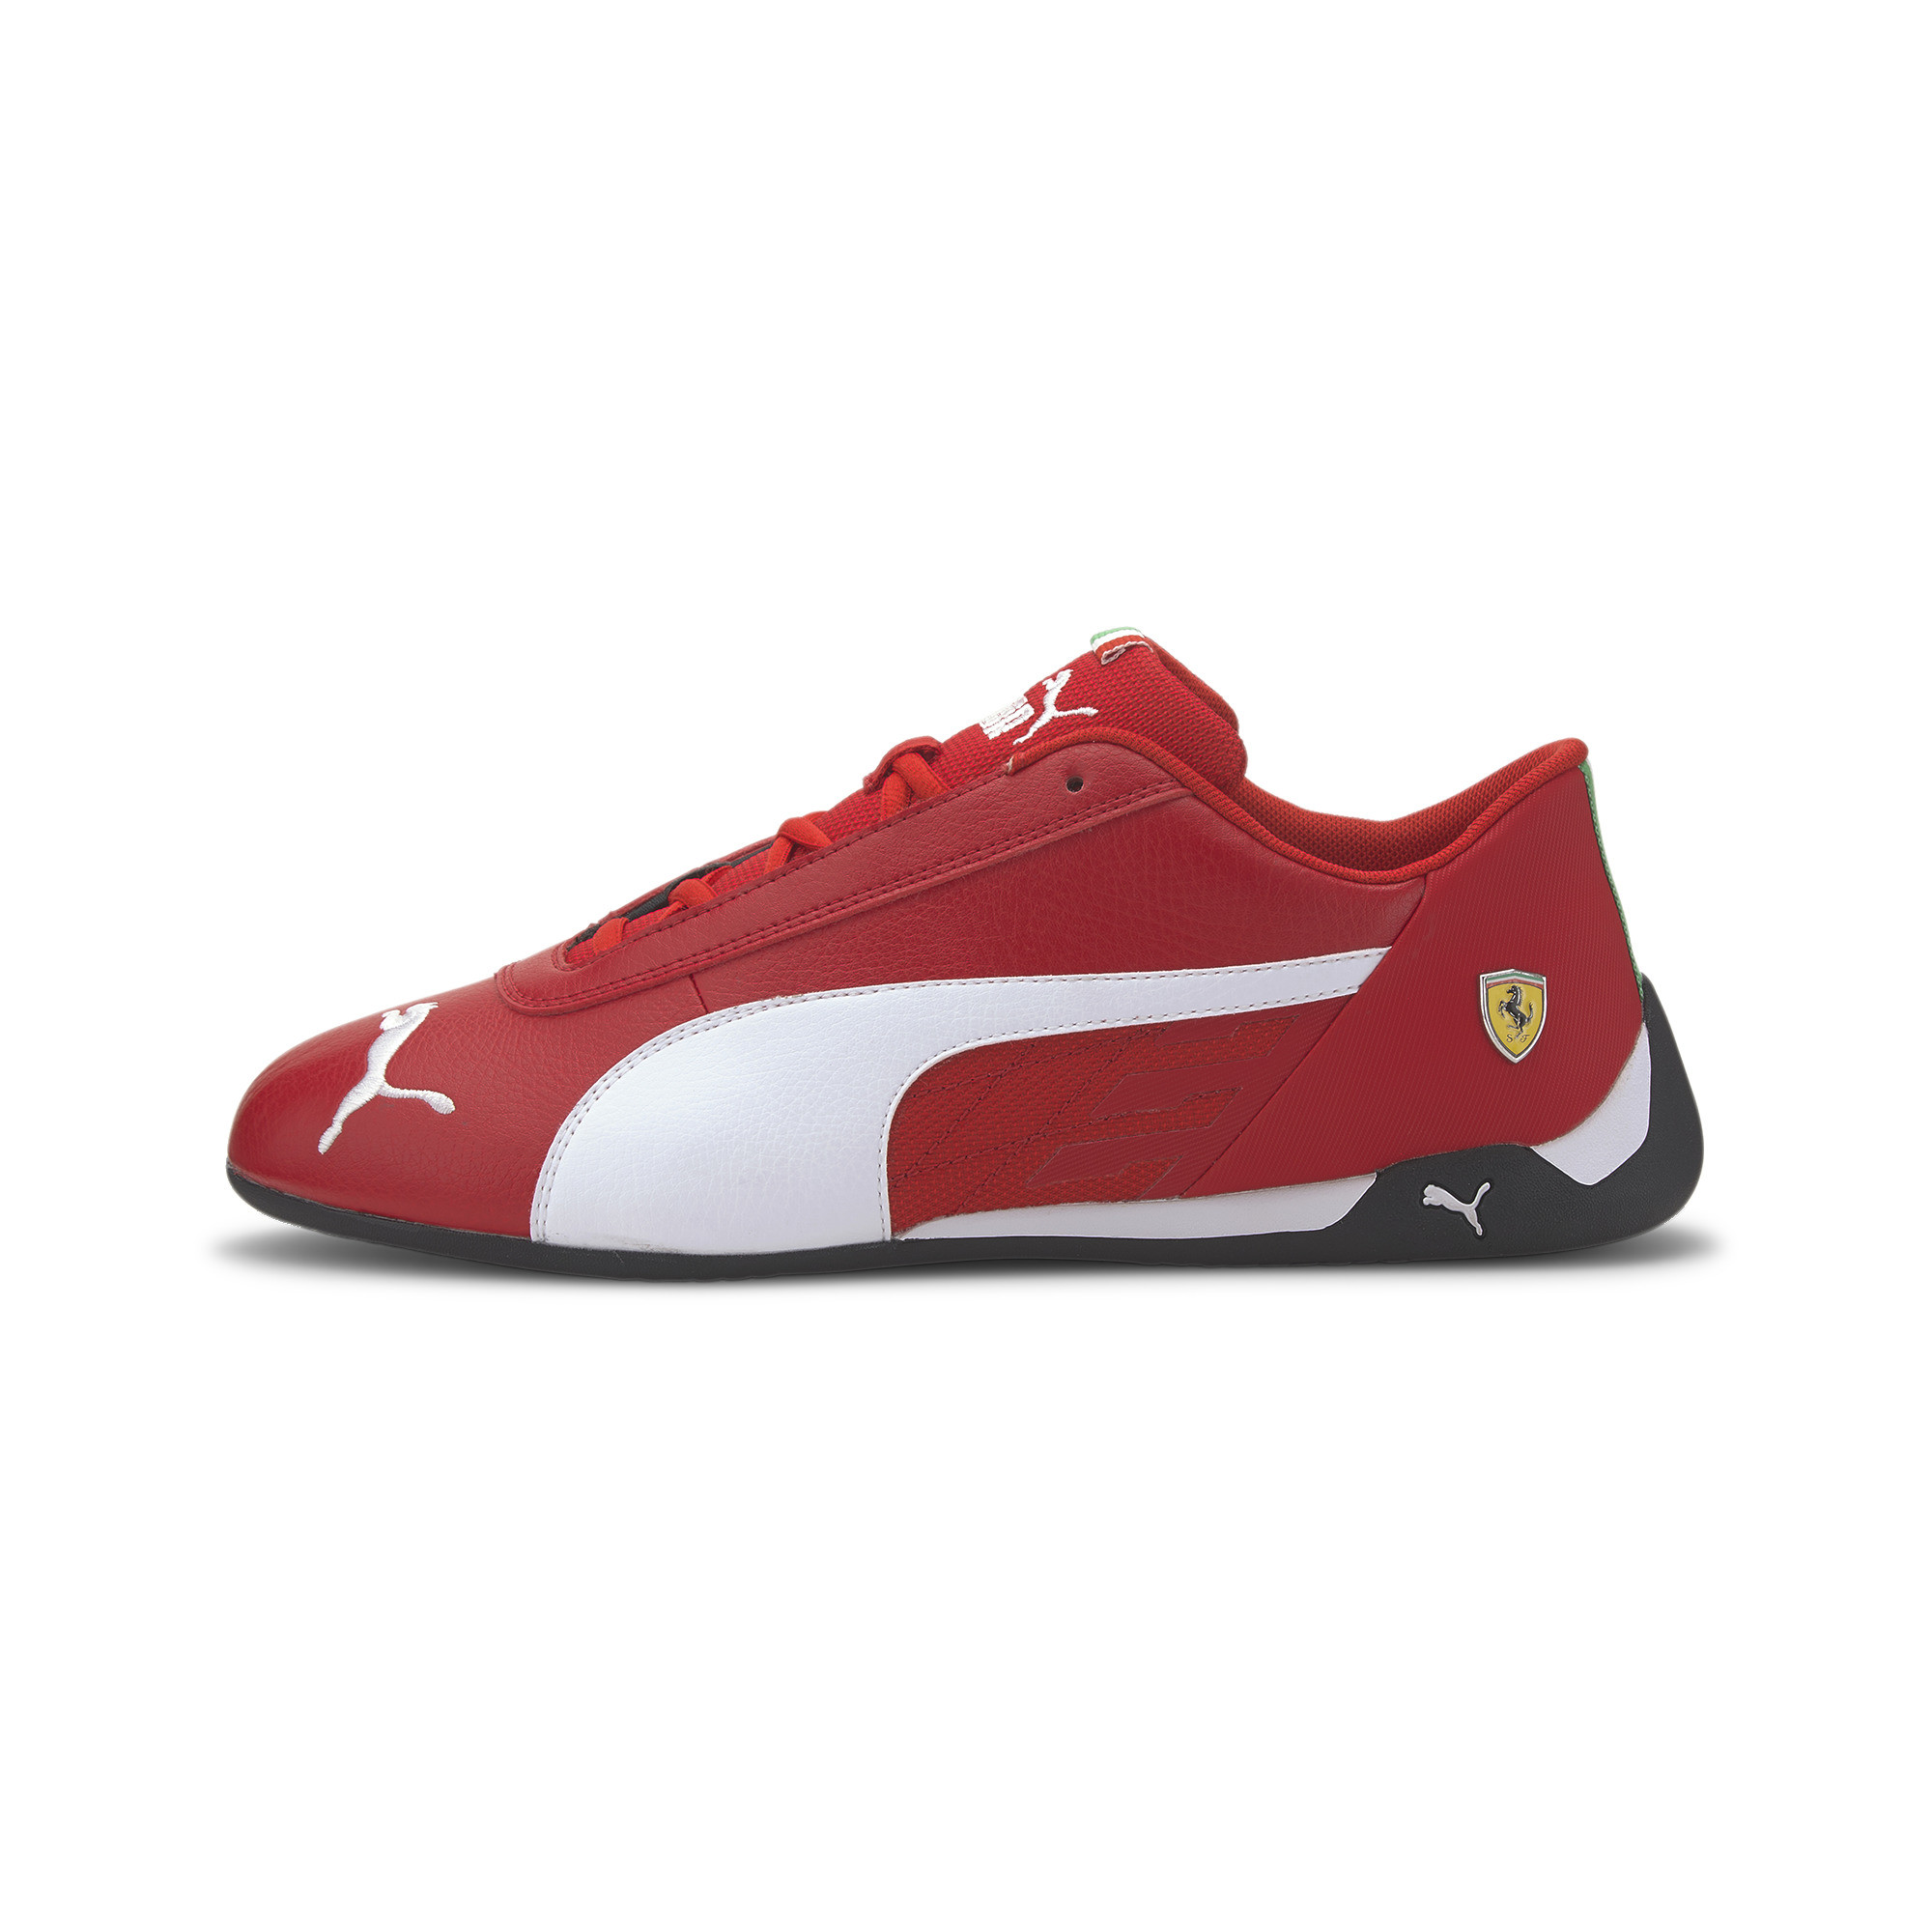 PUMA-Men-039-s-Scuderia-Ferrari-R-Cat-Motorsport-Shoes thumbnail 4